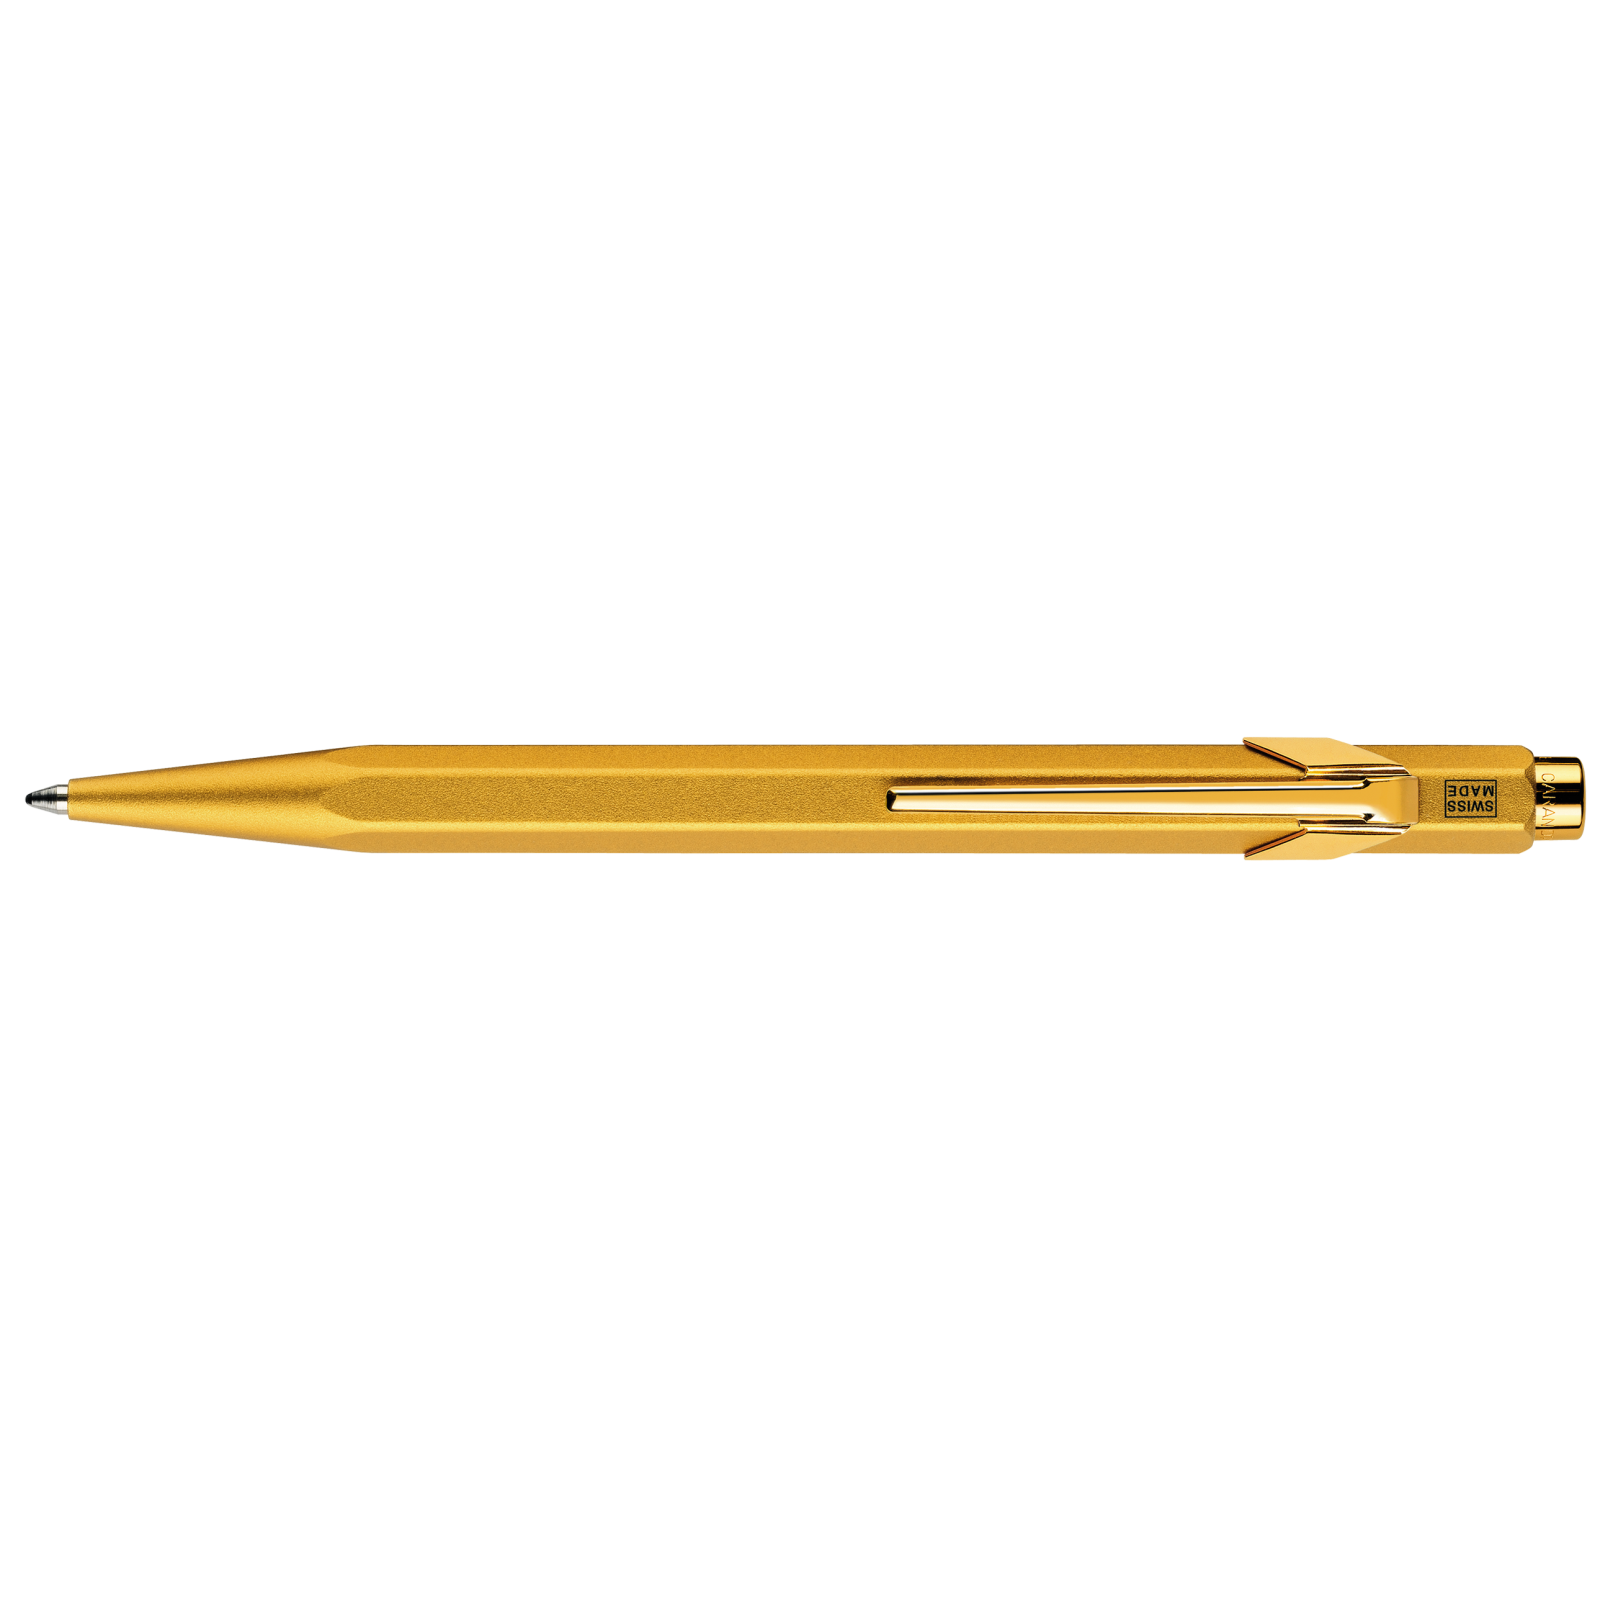 Grab and download Pen  PNG Clipart